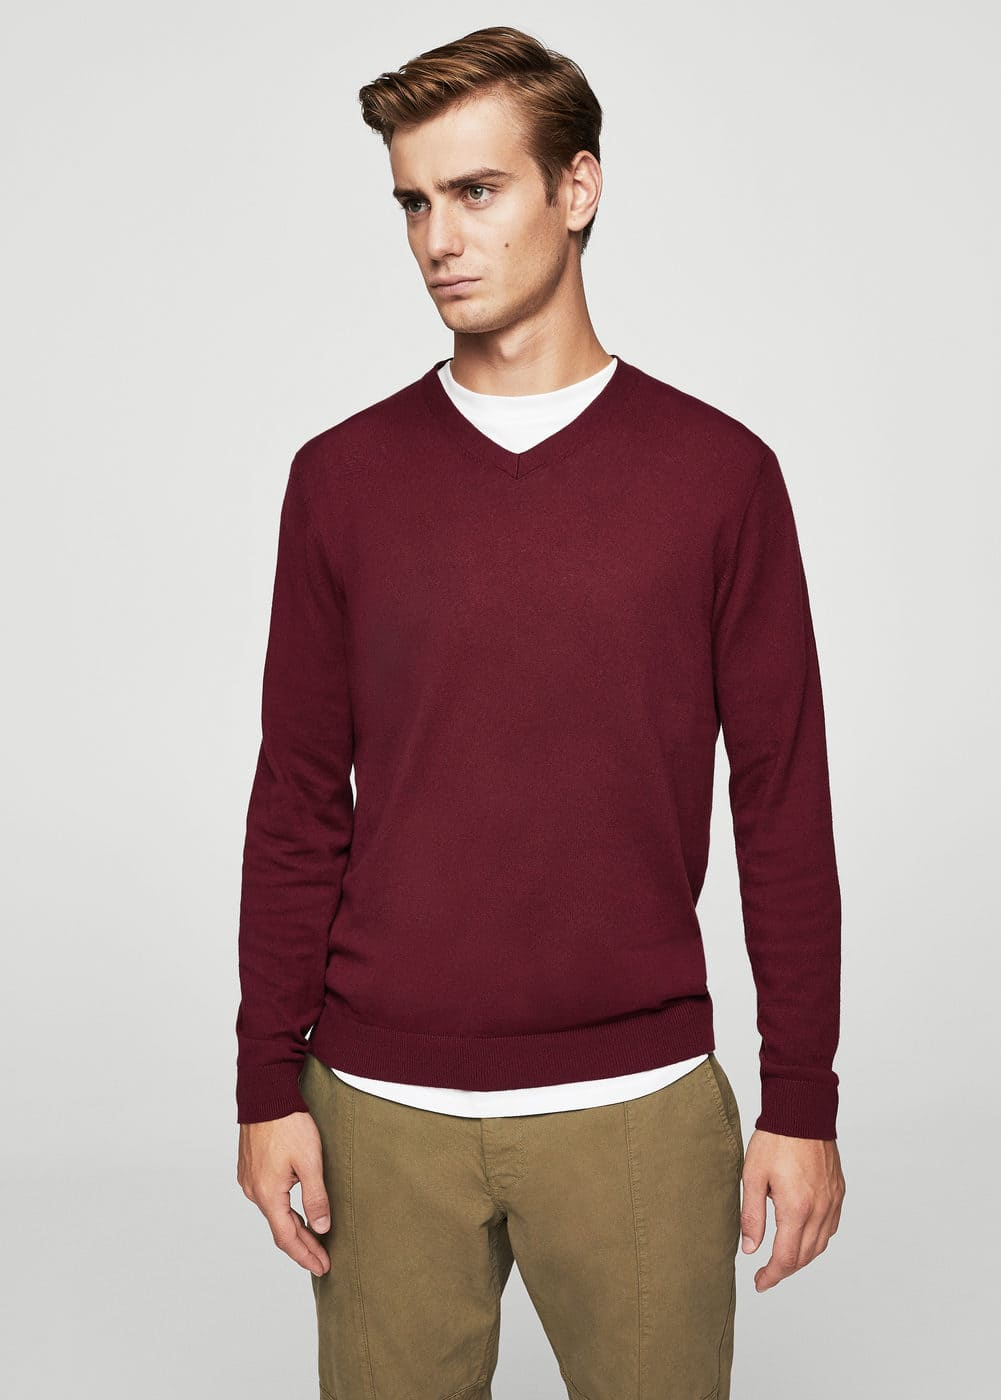 Textured cotton cashmere-blend sweater | MANGO